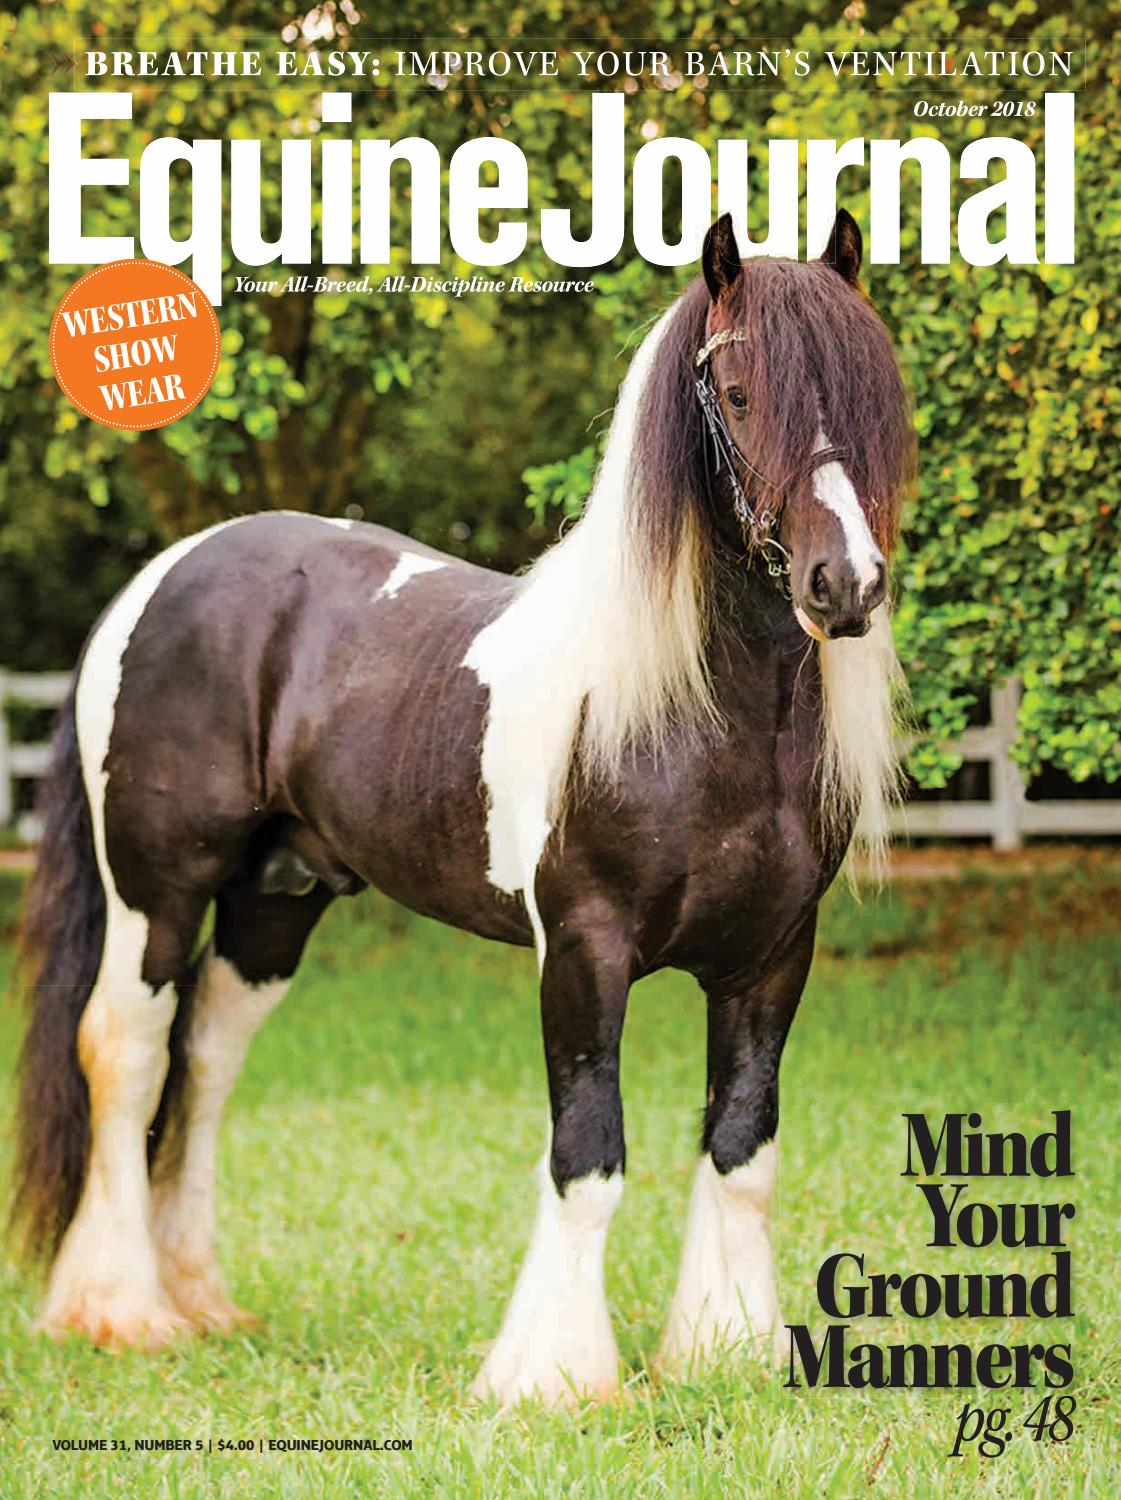 Equine Journal by Cowboy Publishing Group - issuu bf4d60d26d7e